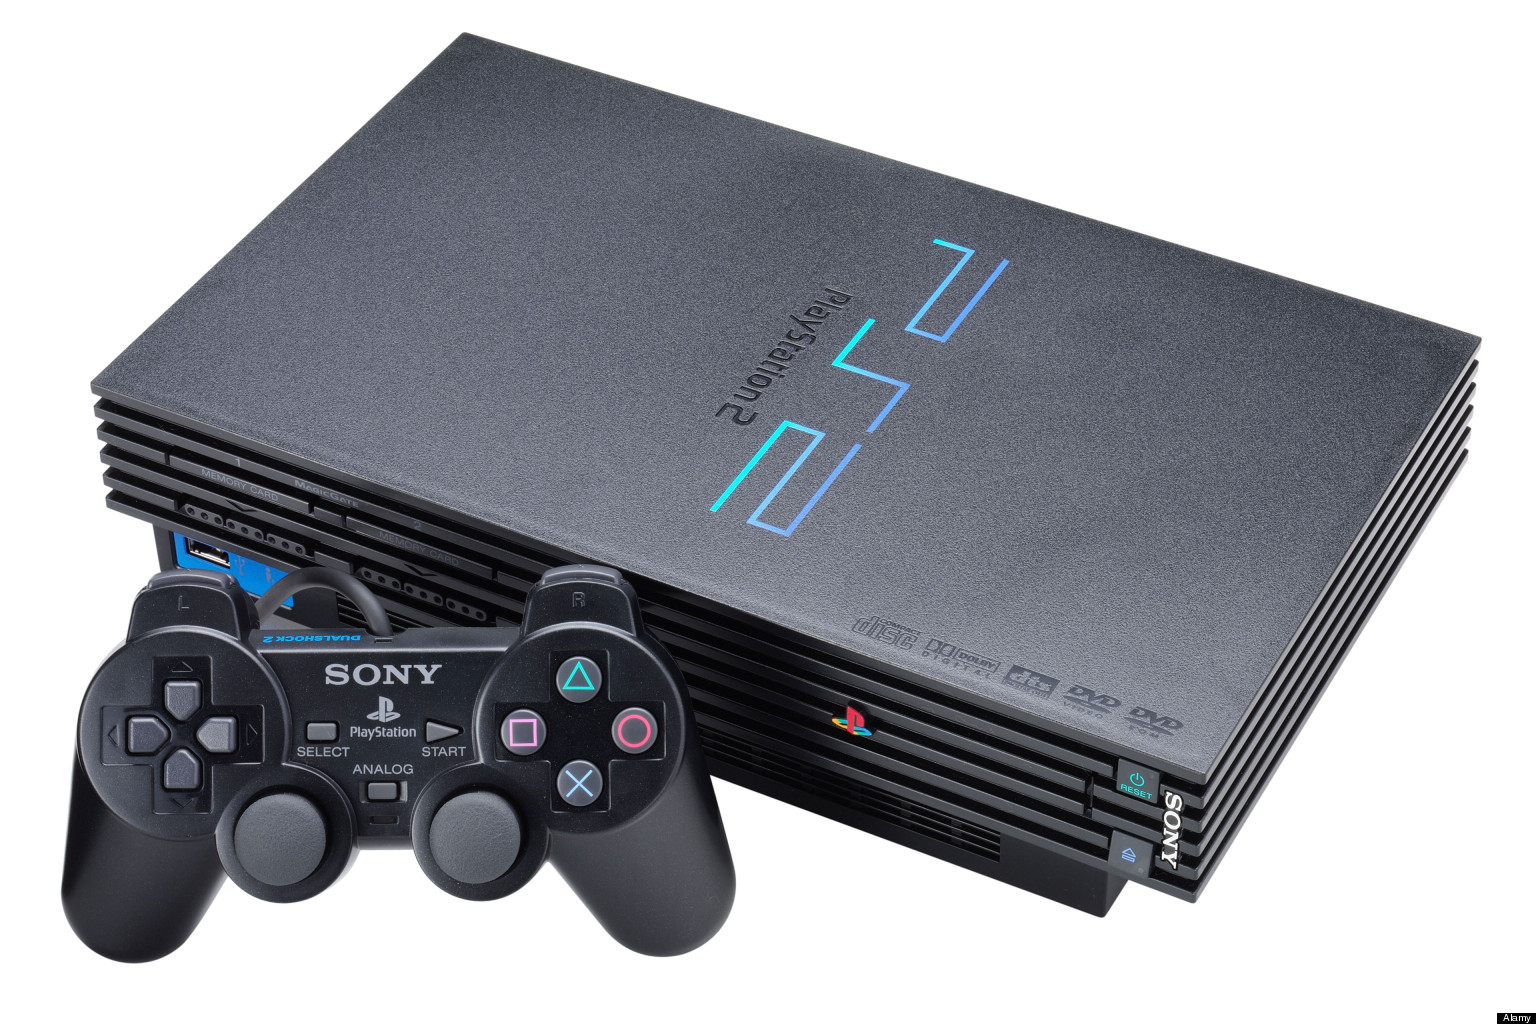 o-PLAYSTATION-2-END-facebook.jpg